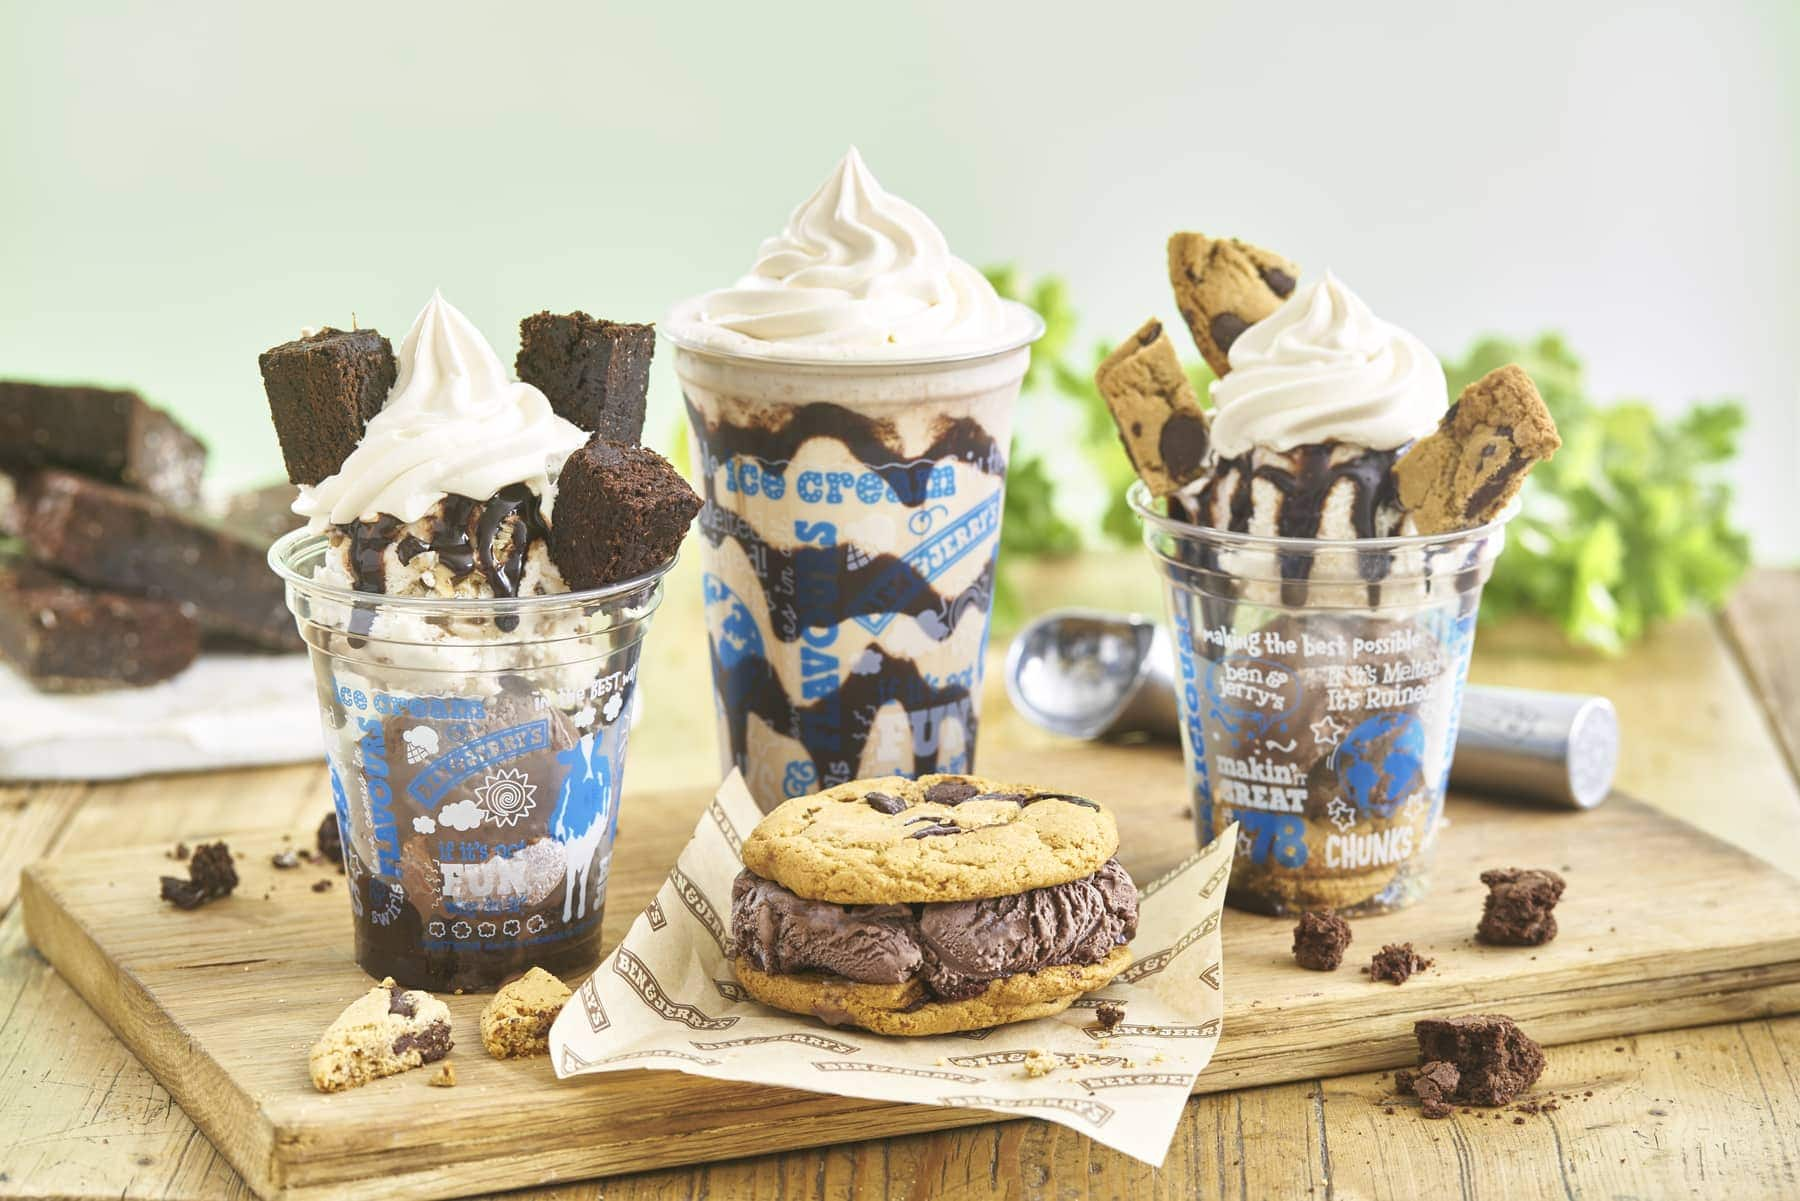 New Launch: Ben & Jerry's Scoop Shop Gets a World Vegan Month Makeover 1